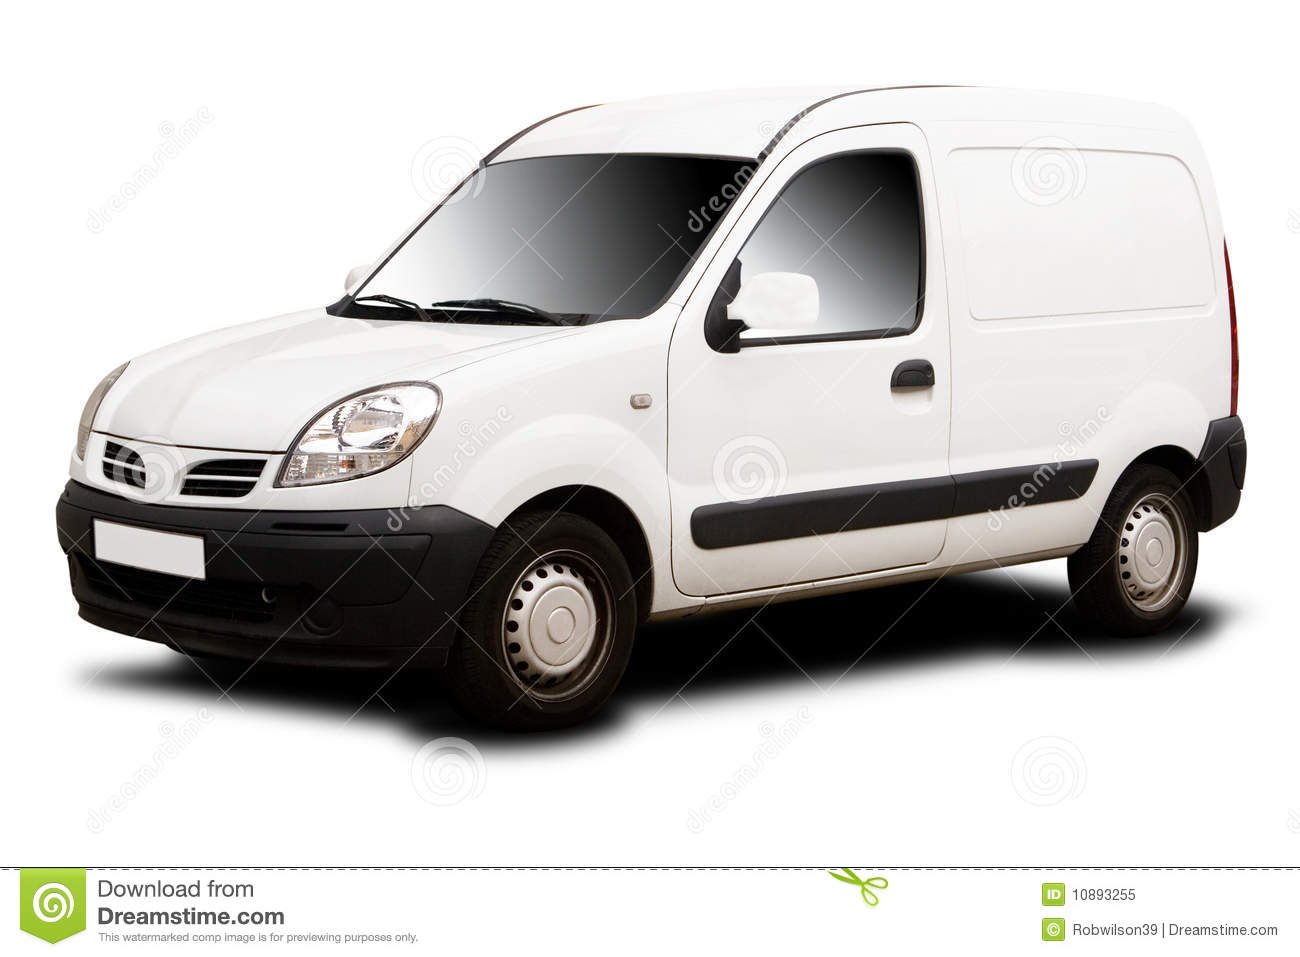 Small Delivery Van Royalty Free Stock Photo - Image: 10893255: www.dreamstime.com/royalty-free-stock-photo-small-delivery-van...